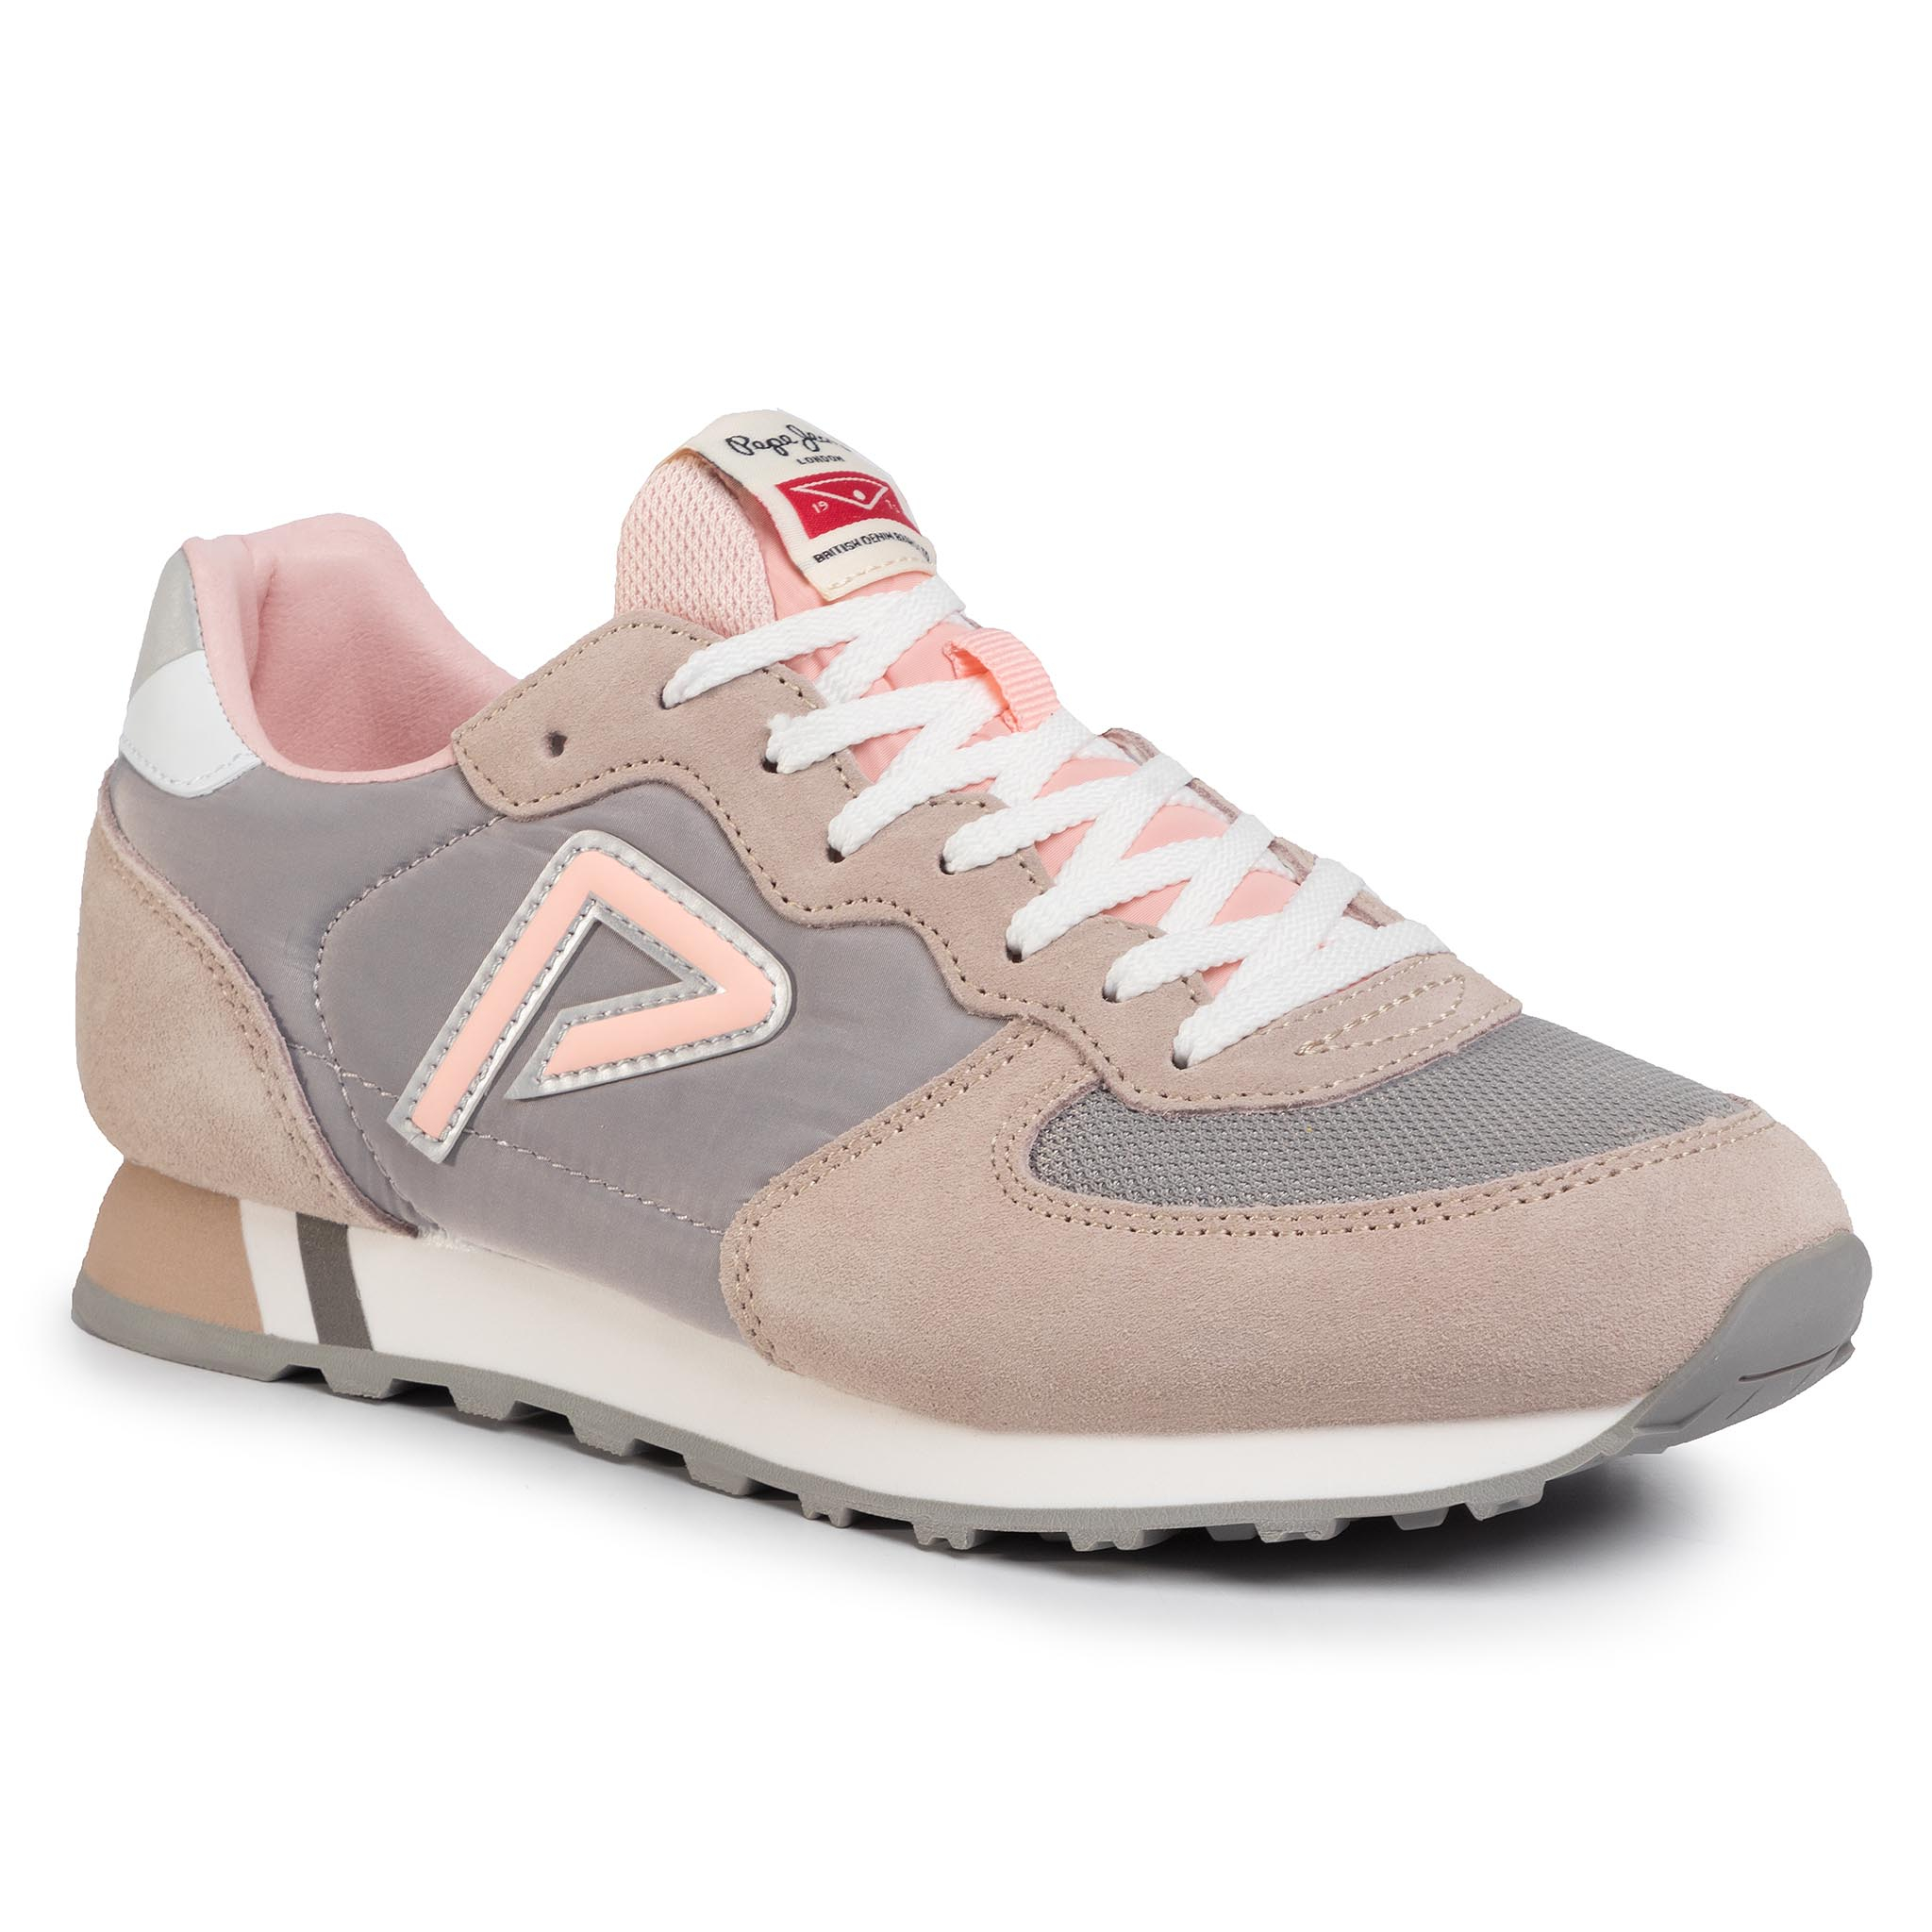 Sneakers PEPE JEANS - Klein Archive Summer PLS31004 Light Pink 315